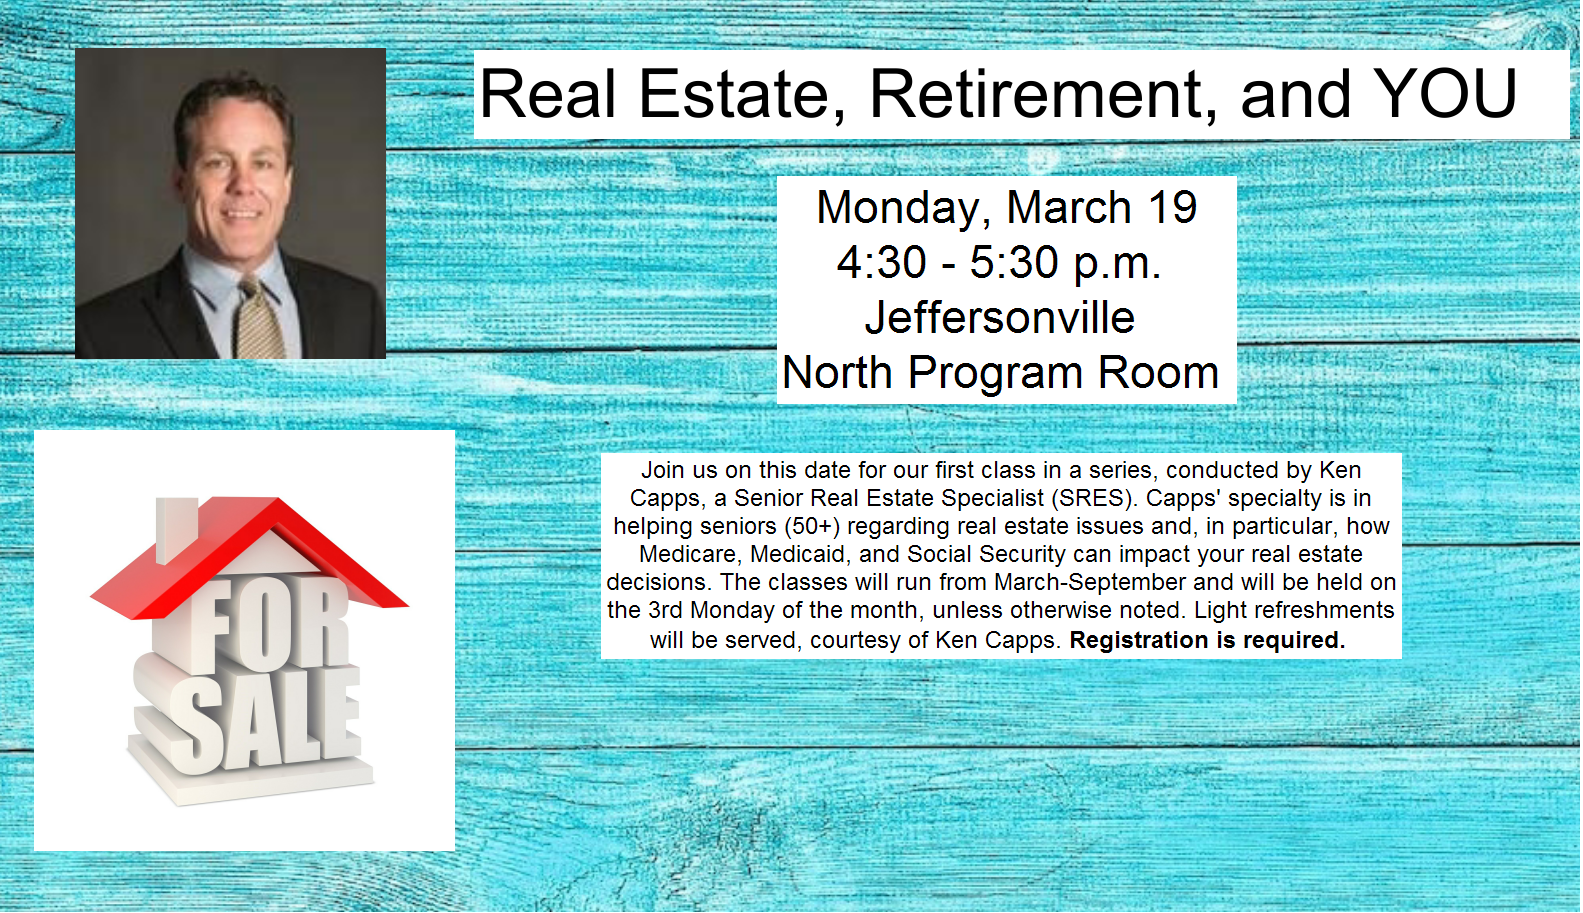 Real Estate, Retirement, and You